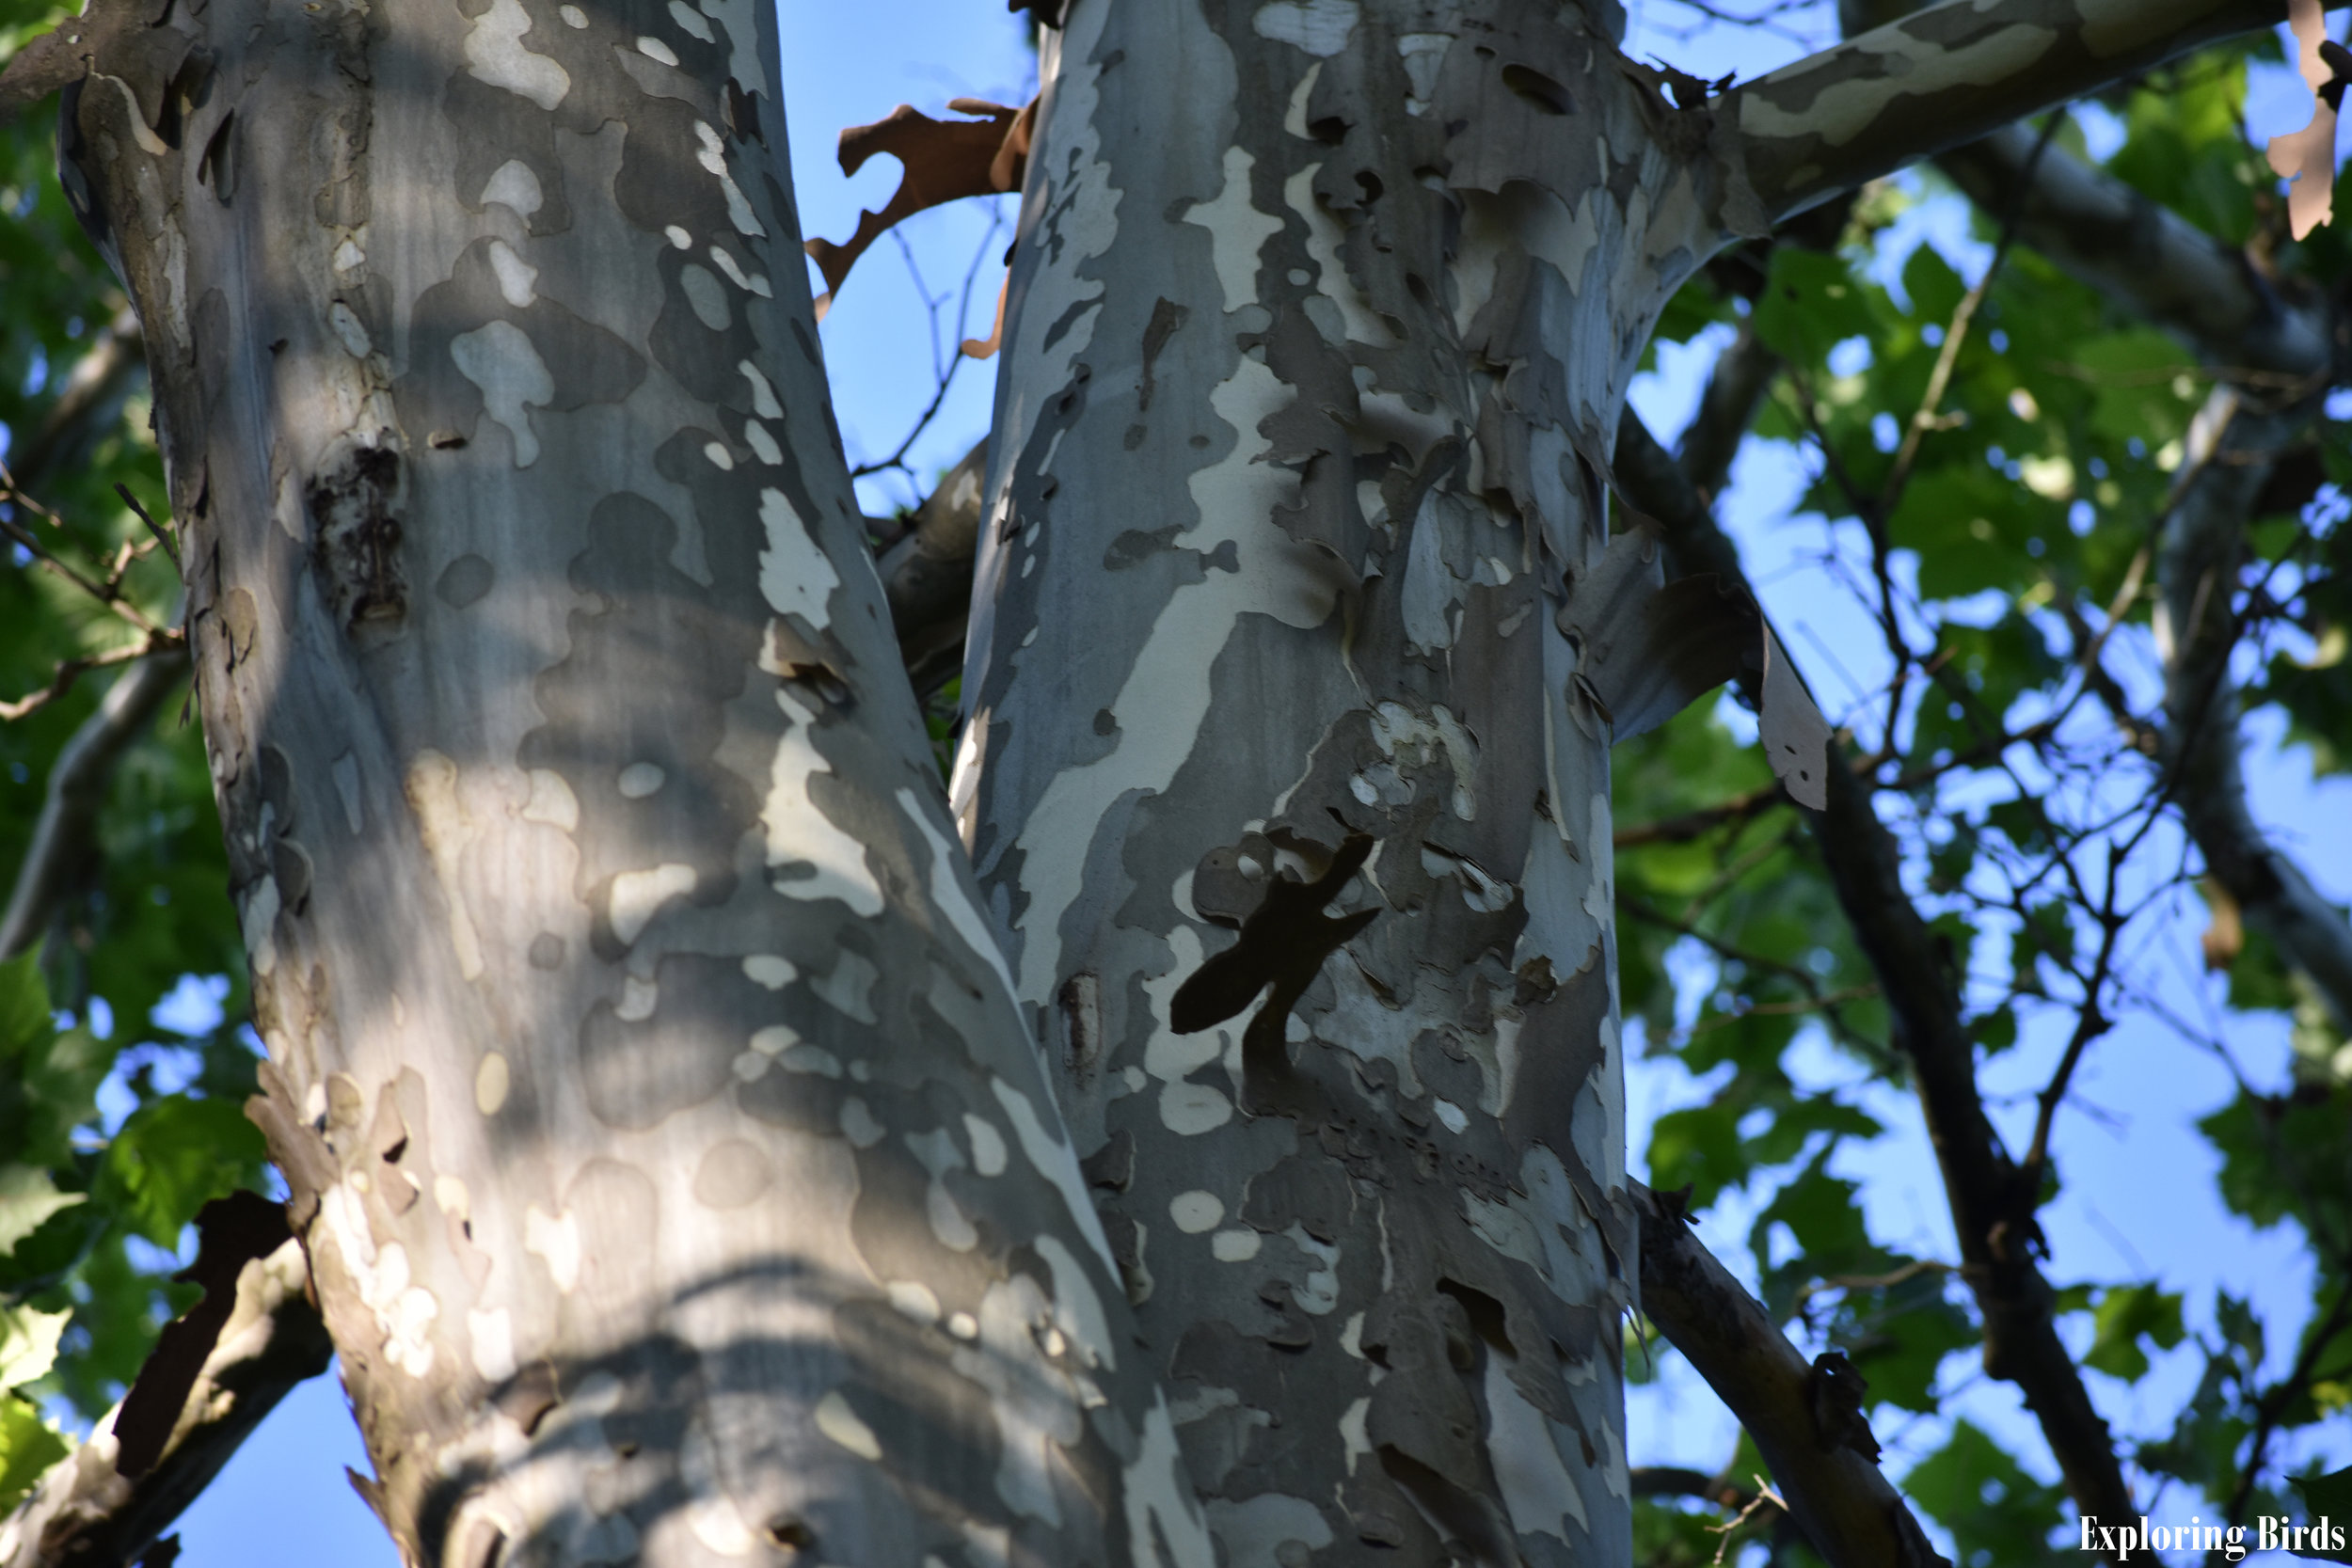 American Sycamore is used by birds for nesting